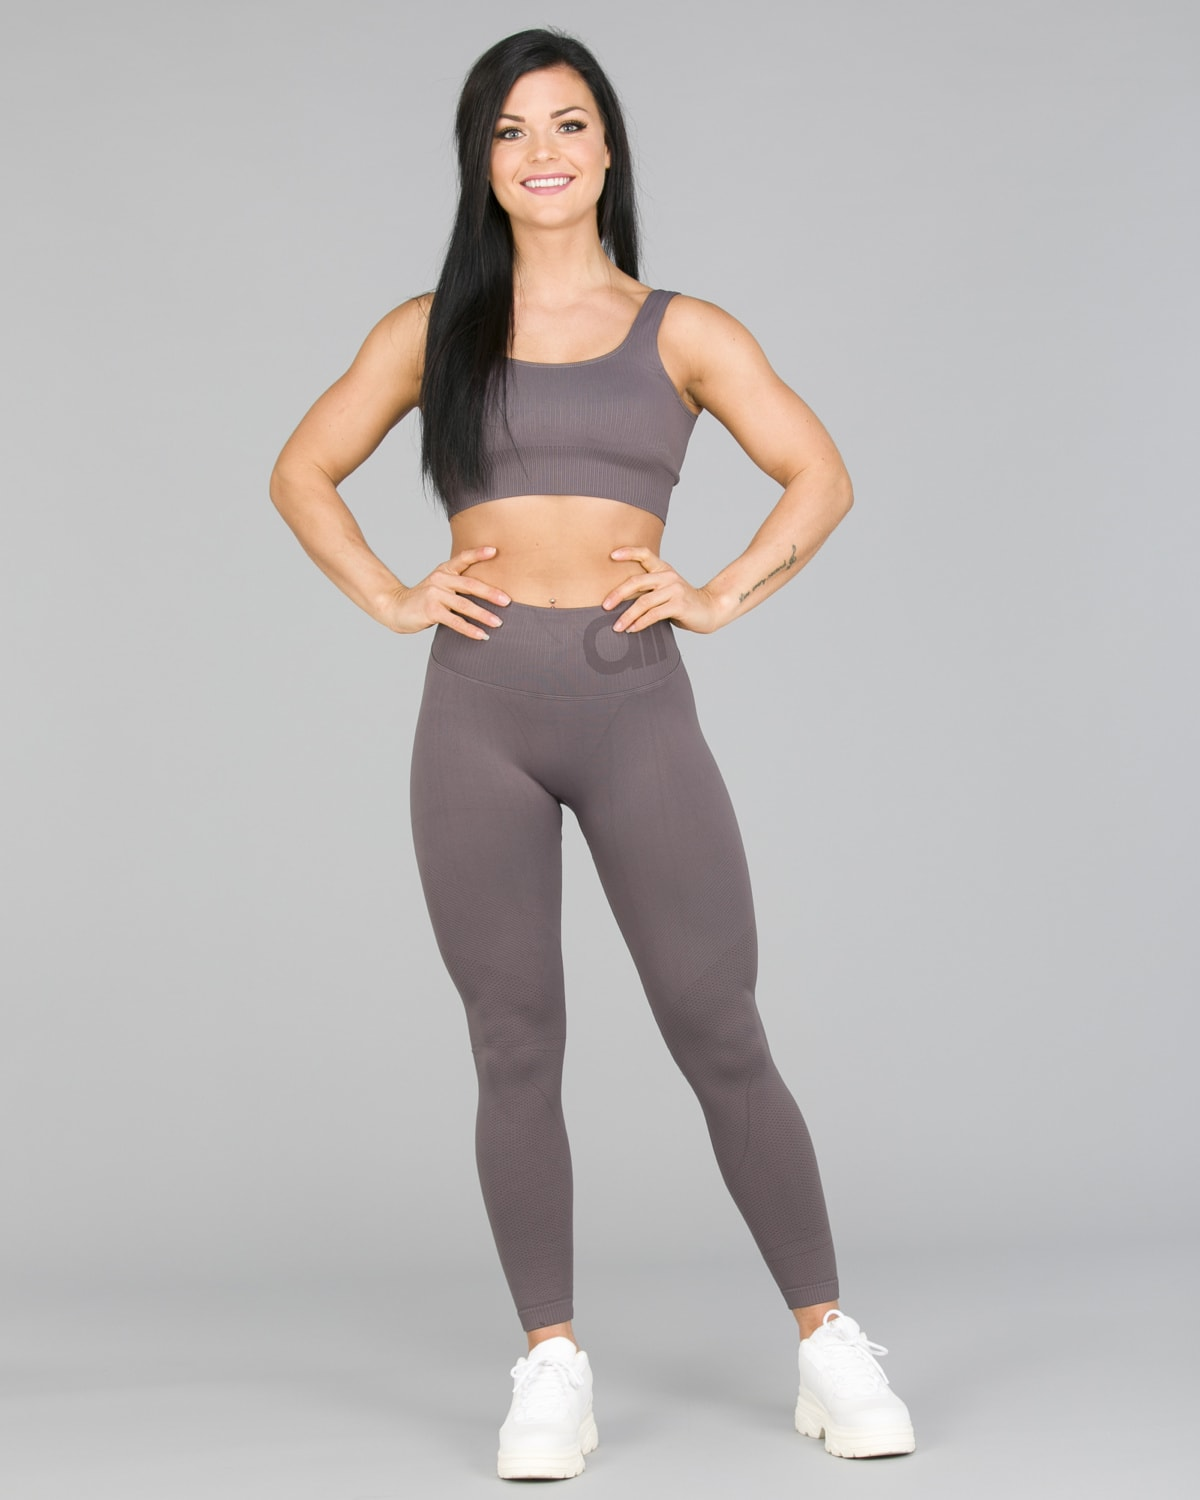 Aim'n Concrete Attention Seamless Tights1_1